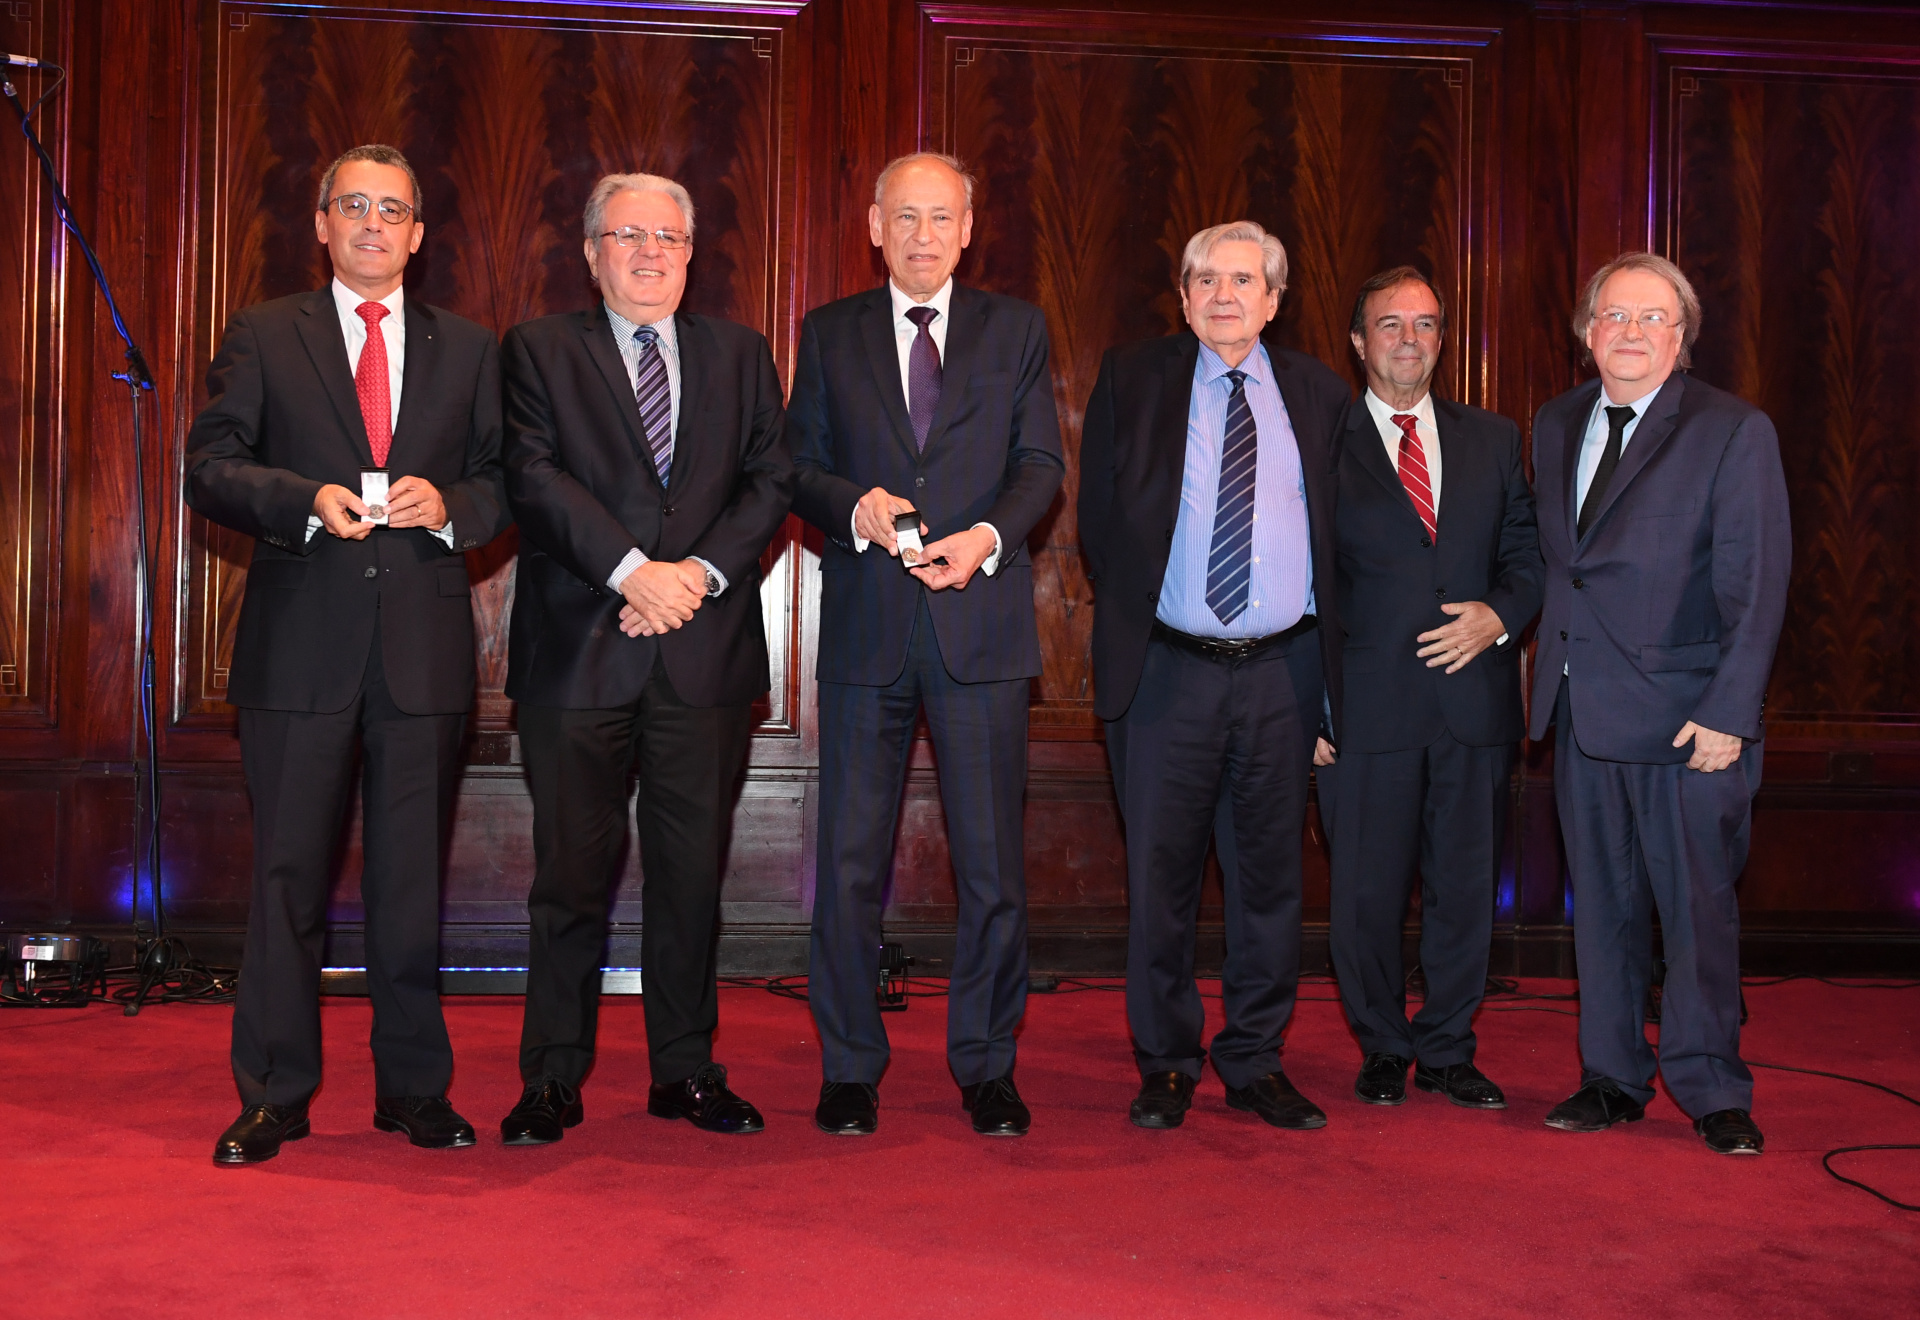 From left to right Federico Carenzo, who was in charge of the project; the rector Alberto Barbieri; Luis Ovsejevich, president of the Konex Foundation; dean of Faculty of Law, Alberto Bueres; Vice-Dean Mardelo Gerald, and chief executive of Marcelo Haissiner